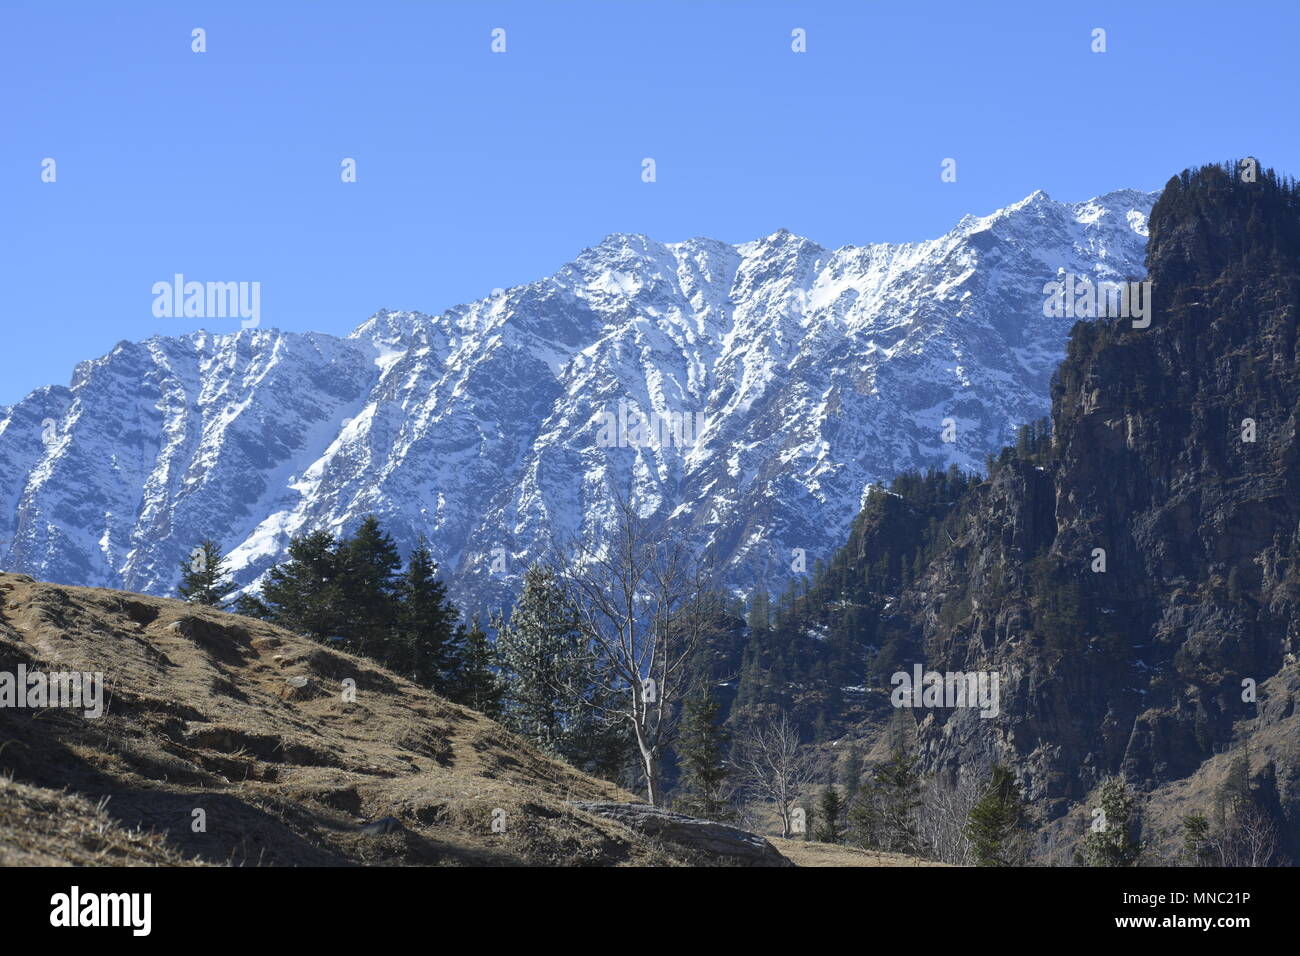 Manali is a resort town nestled in the mountains of the Indian state of Himachal Pradesh near the northern end of the Kullu Valley, at an 2050 m l - Stock Image